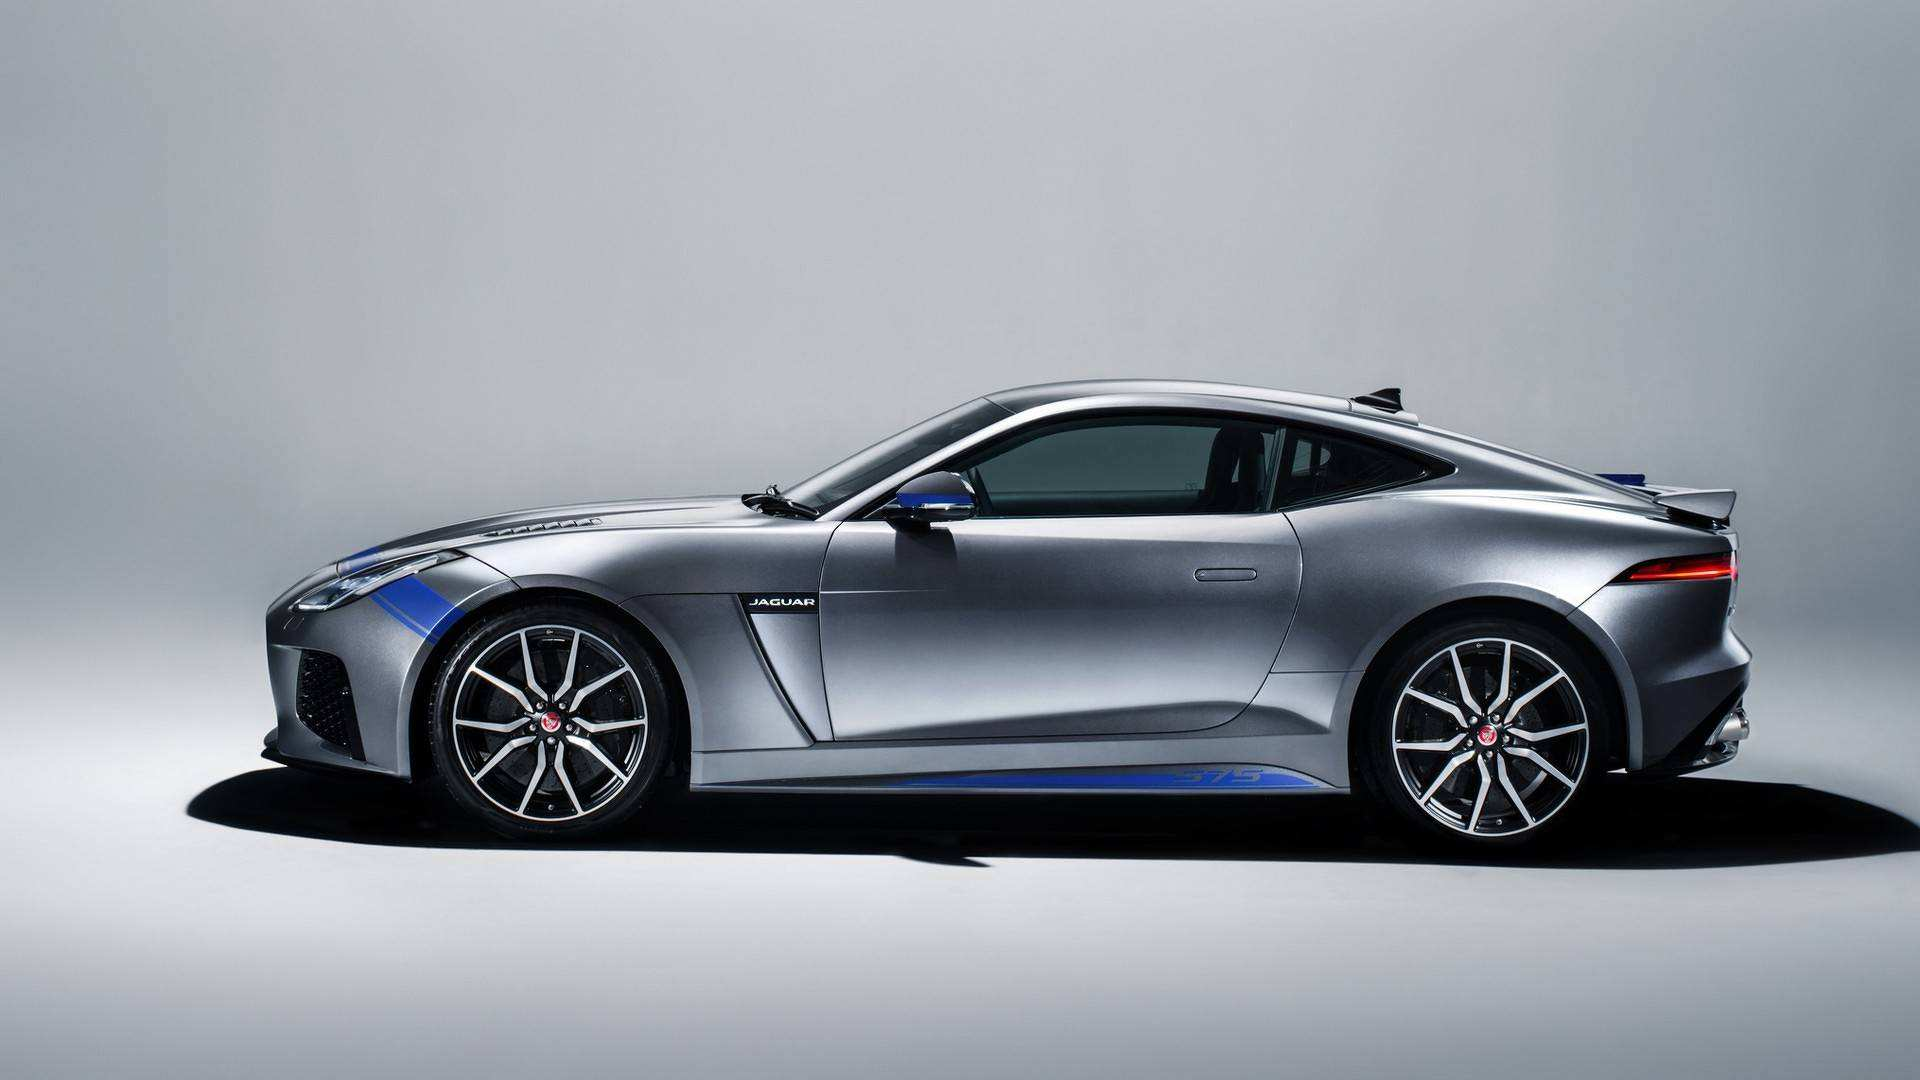 79 A Jaguar Supercar 2020 Review And Release Date